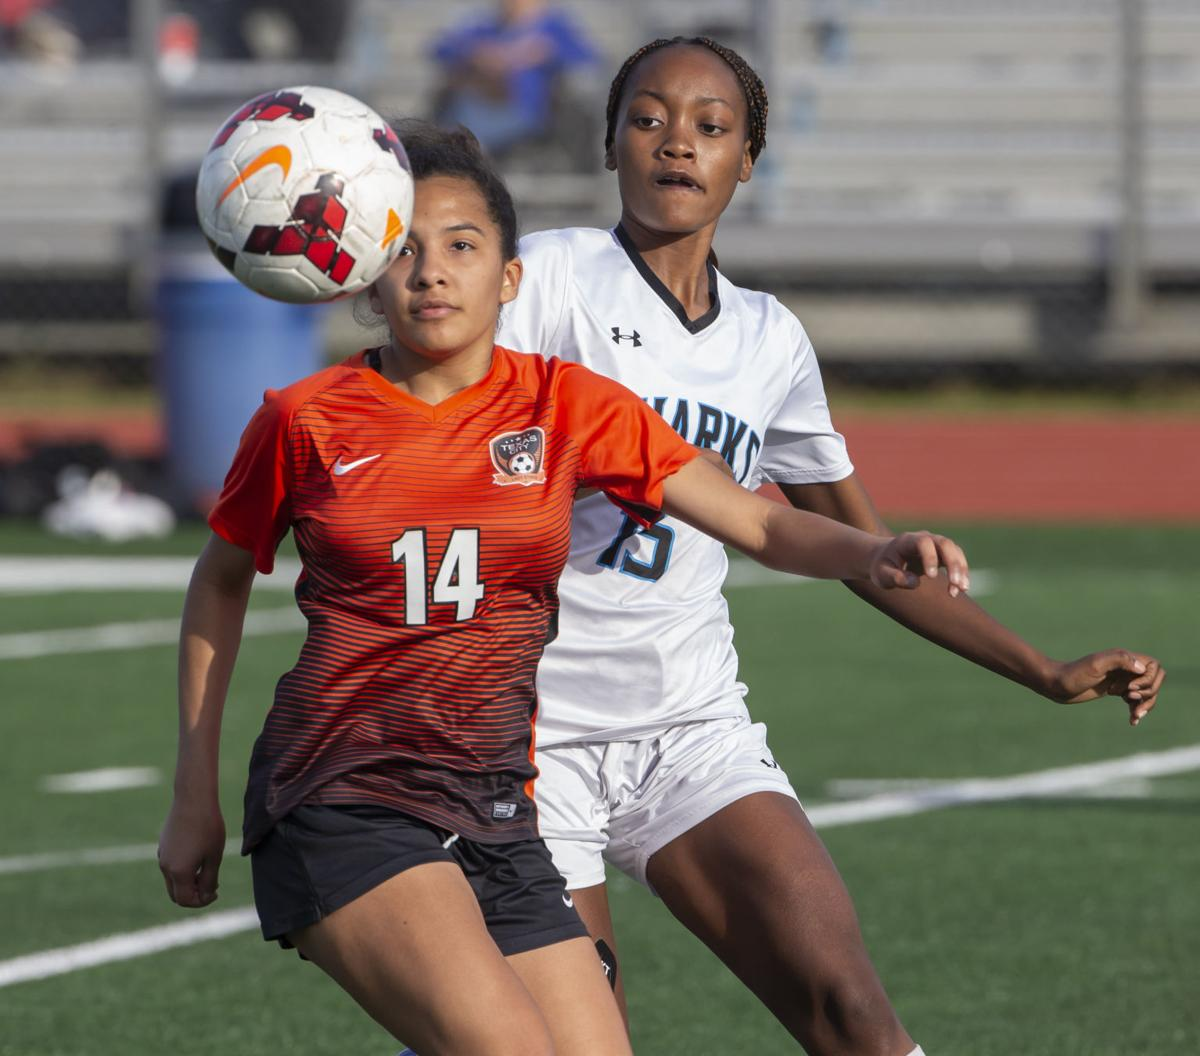 Texas City vs Shadow Creek Girls Soccer